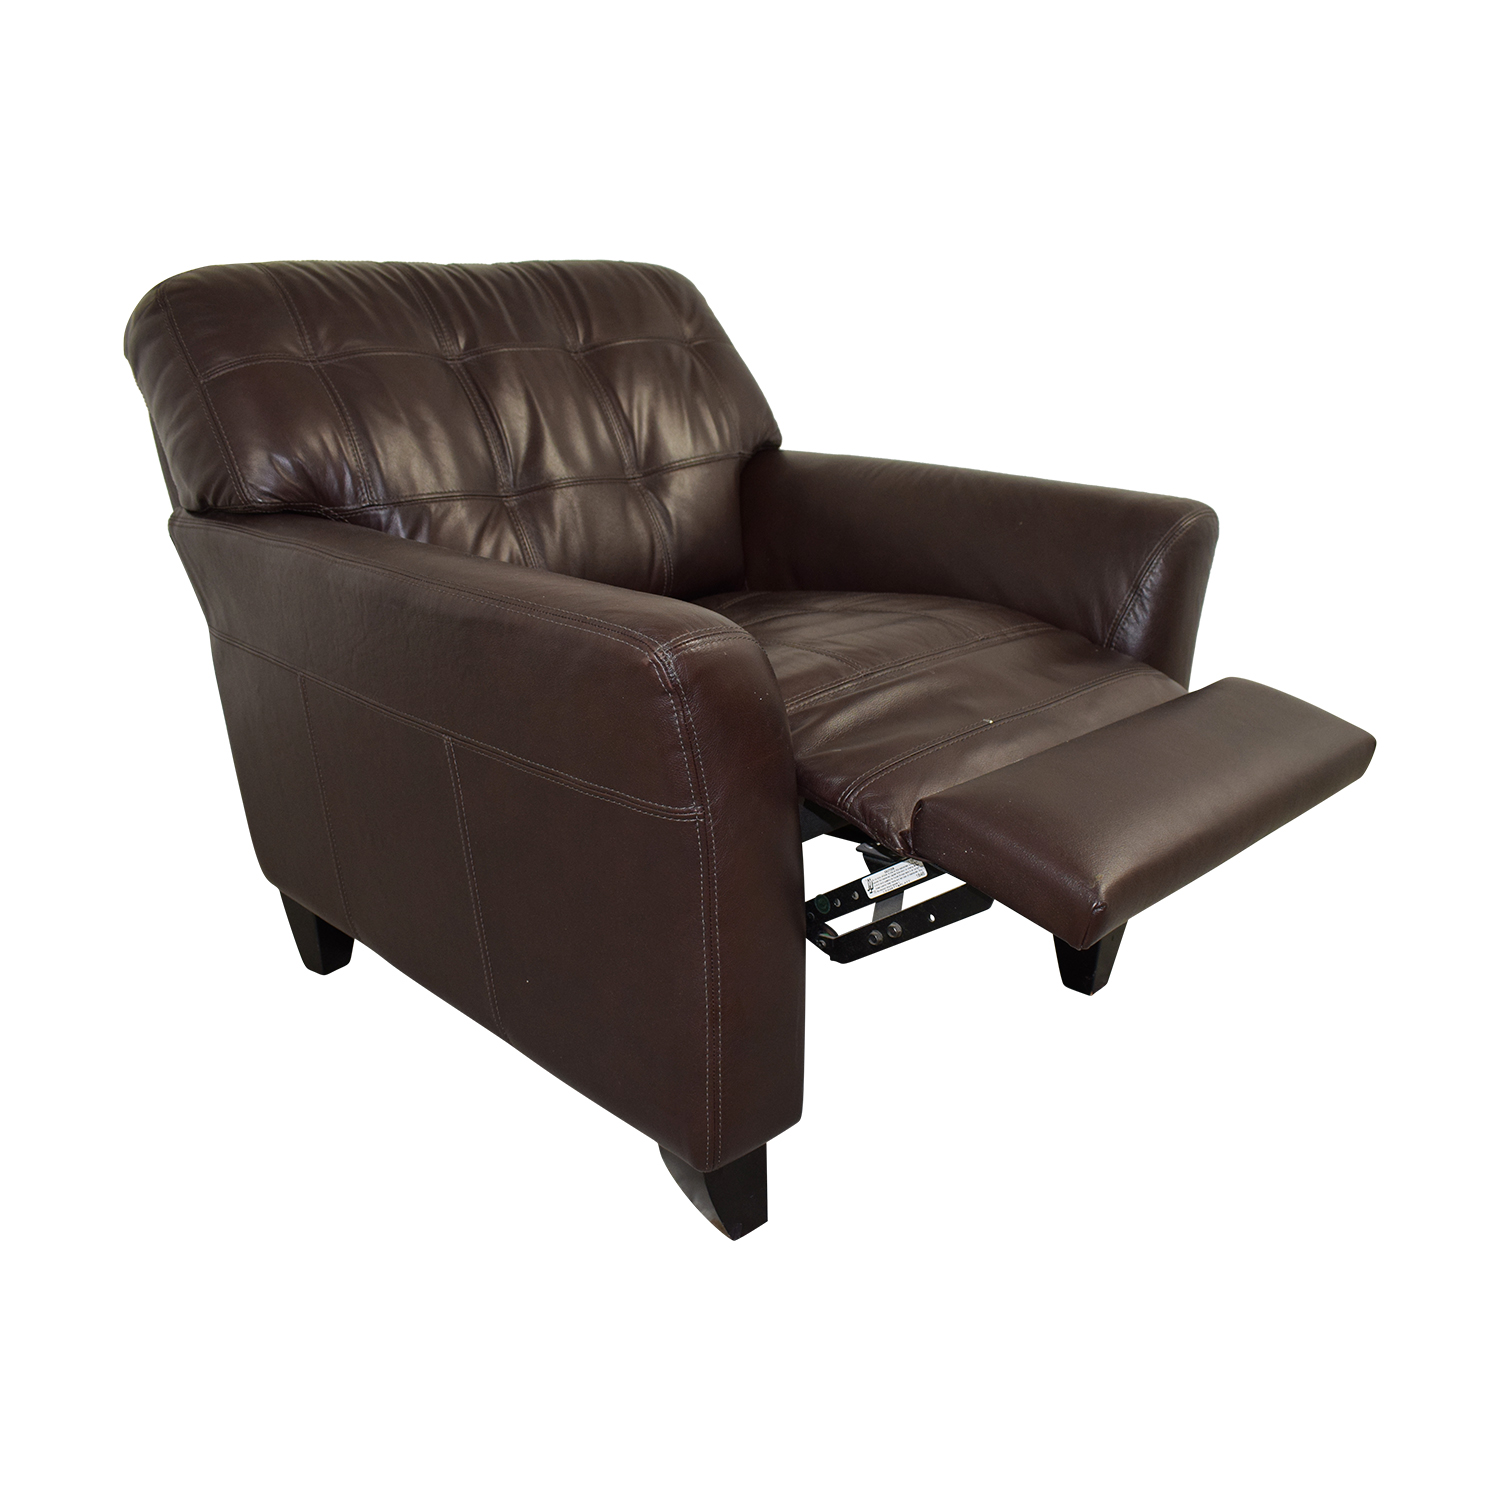 Macy's Macy's Kaleb Armchair for sale